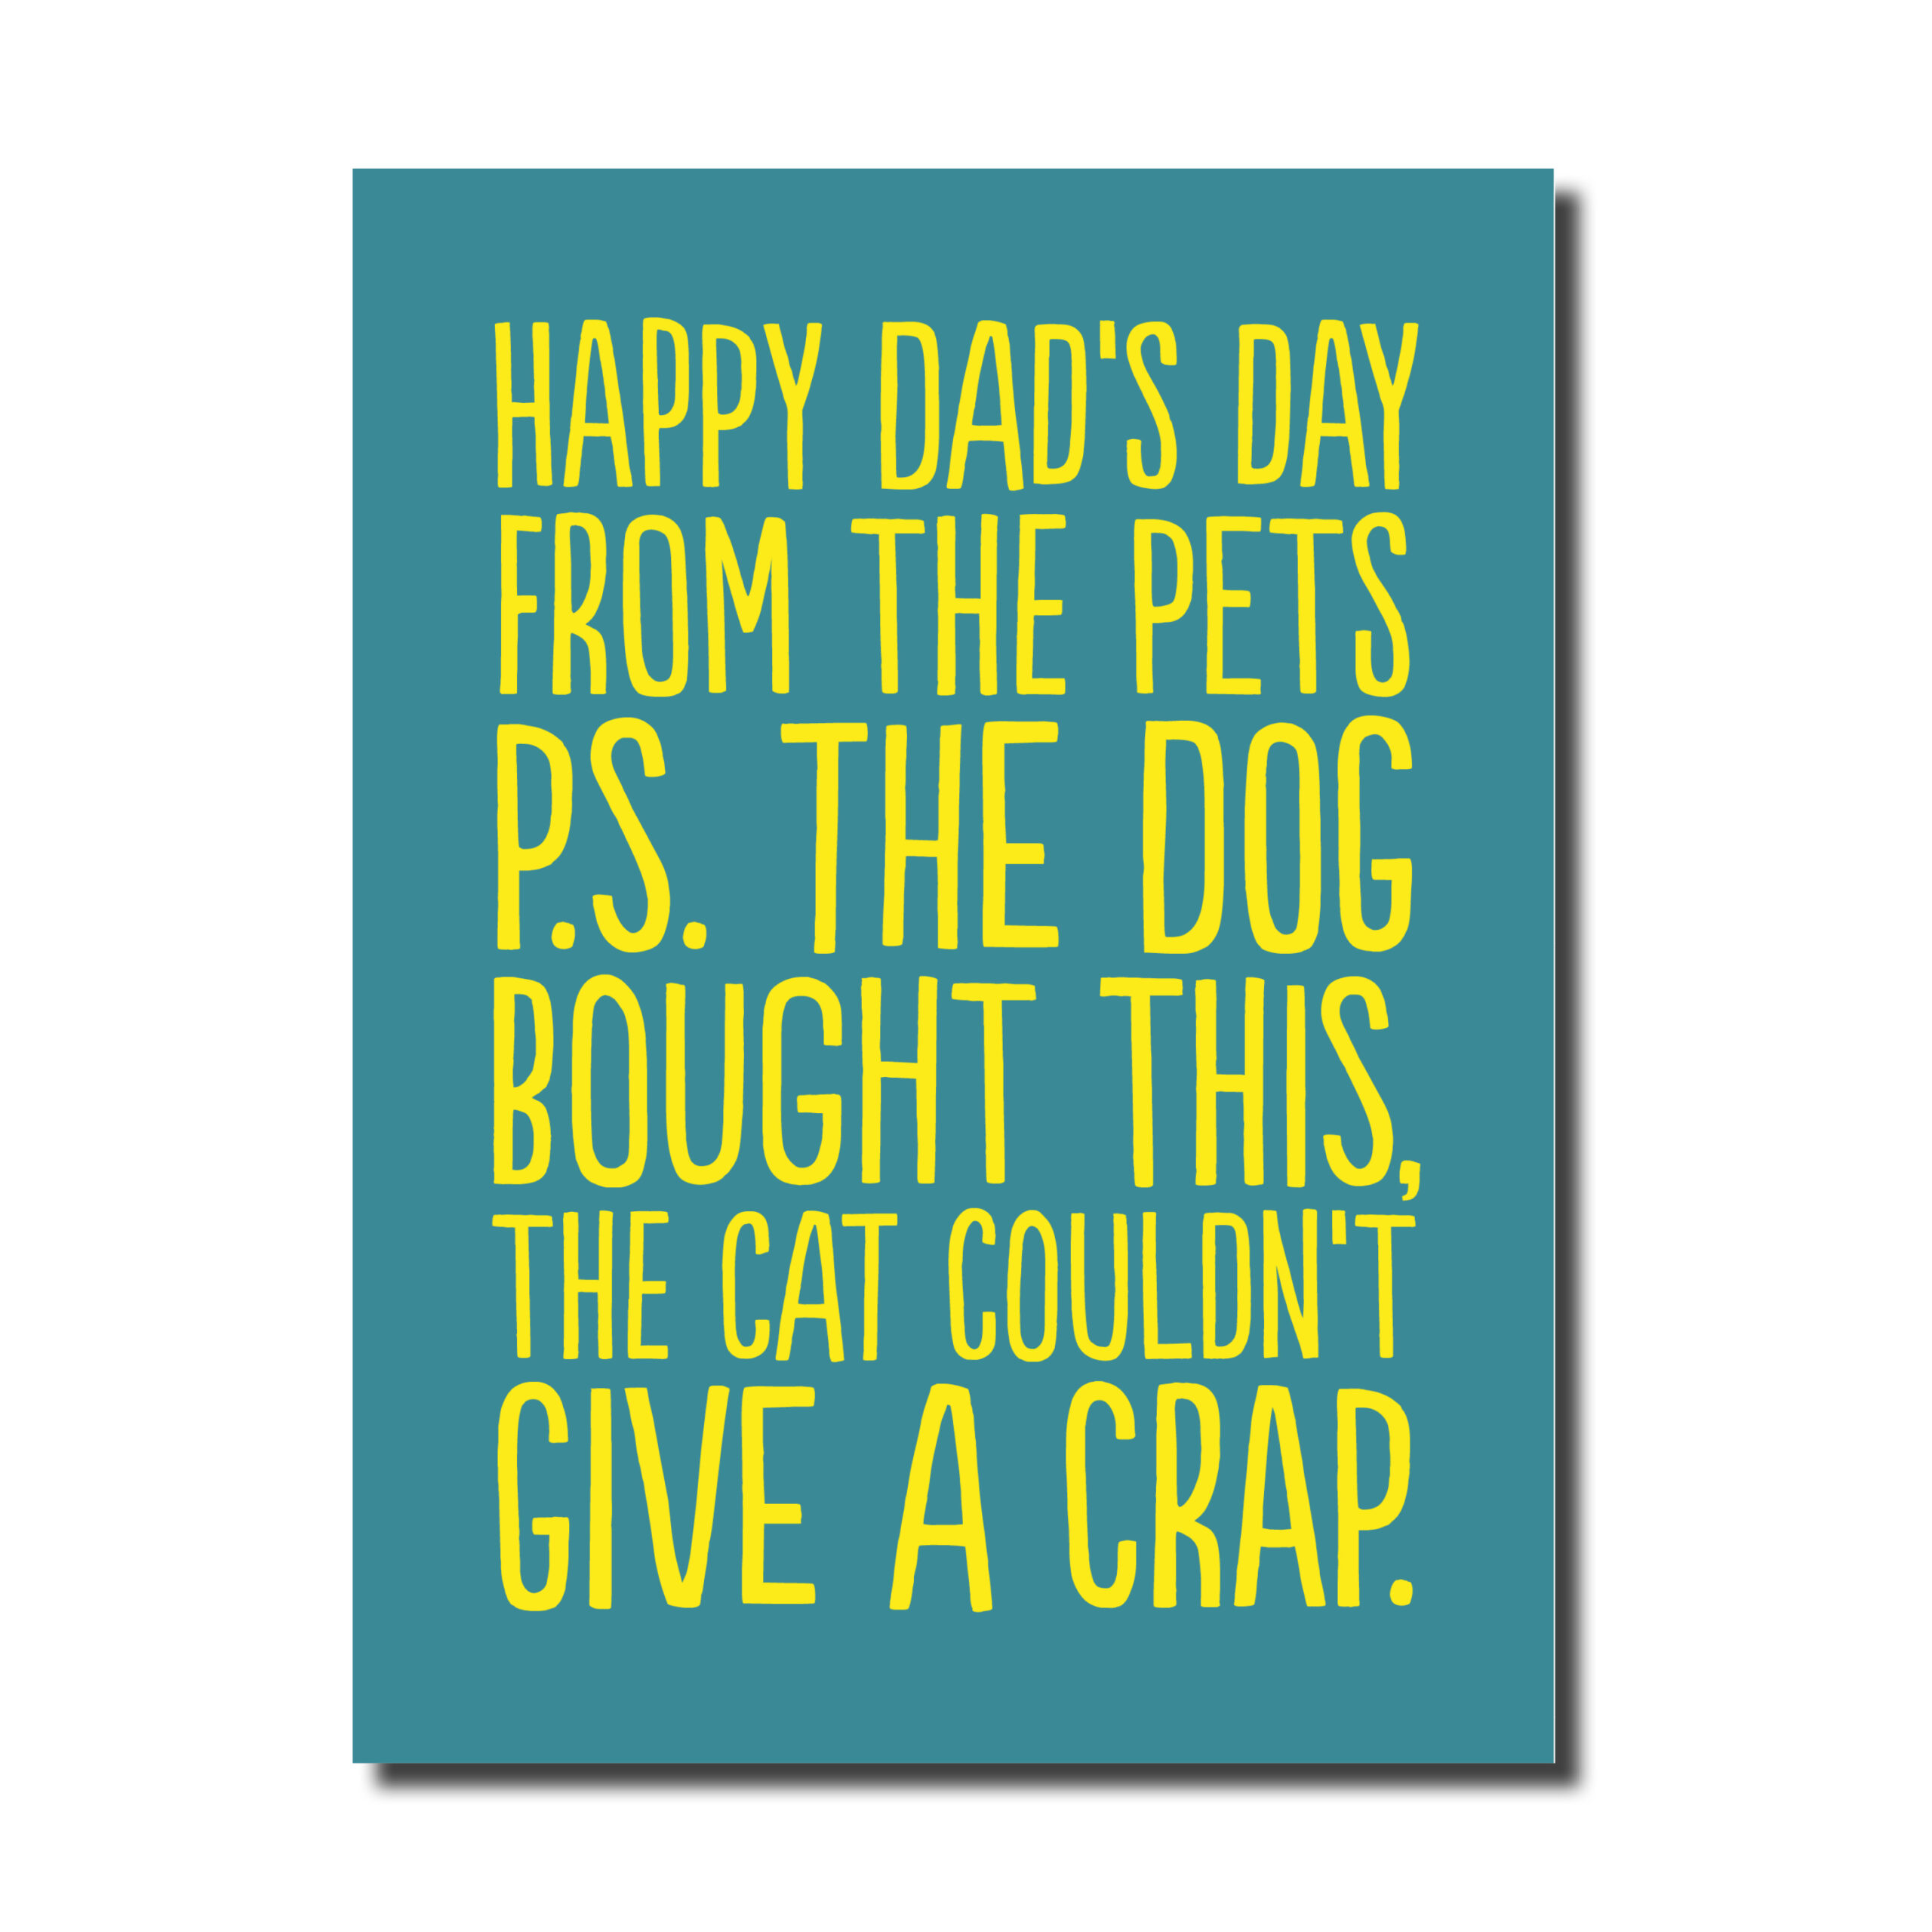 Dog Bought This... Funny Card